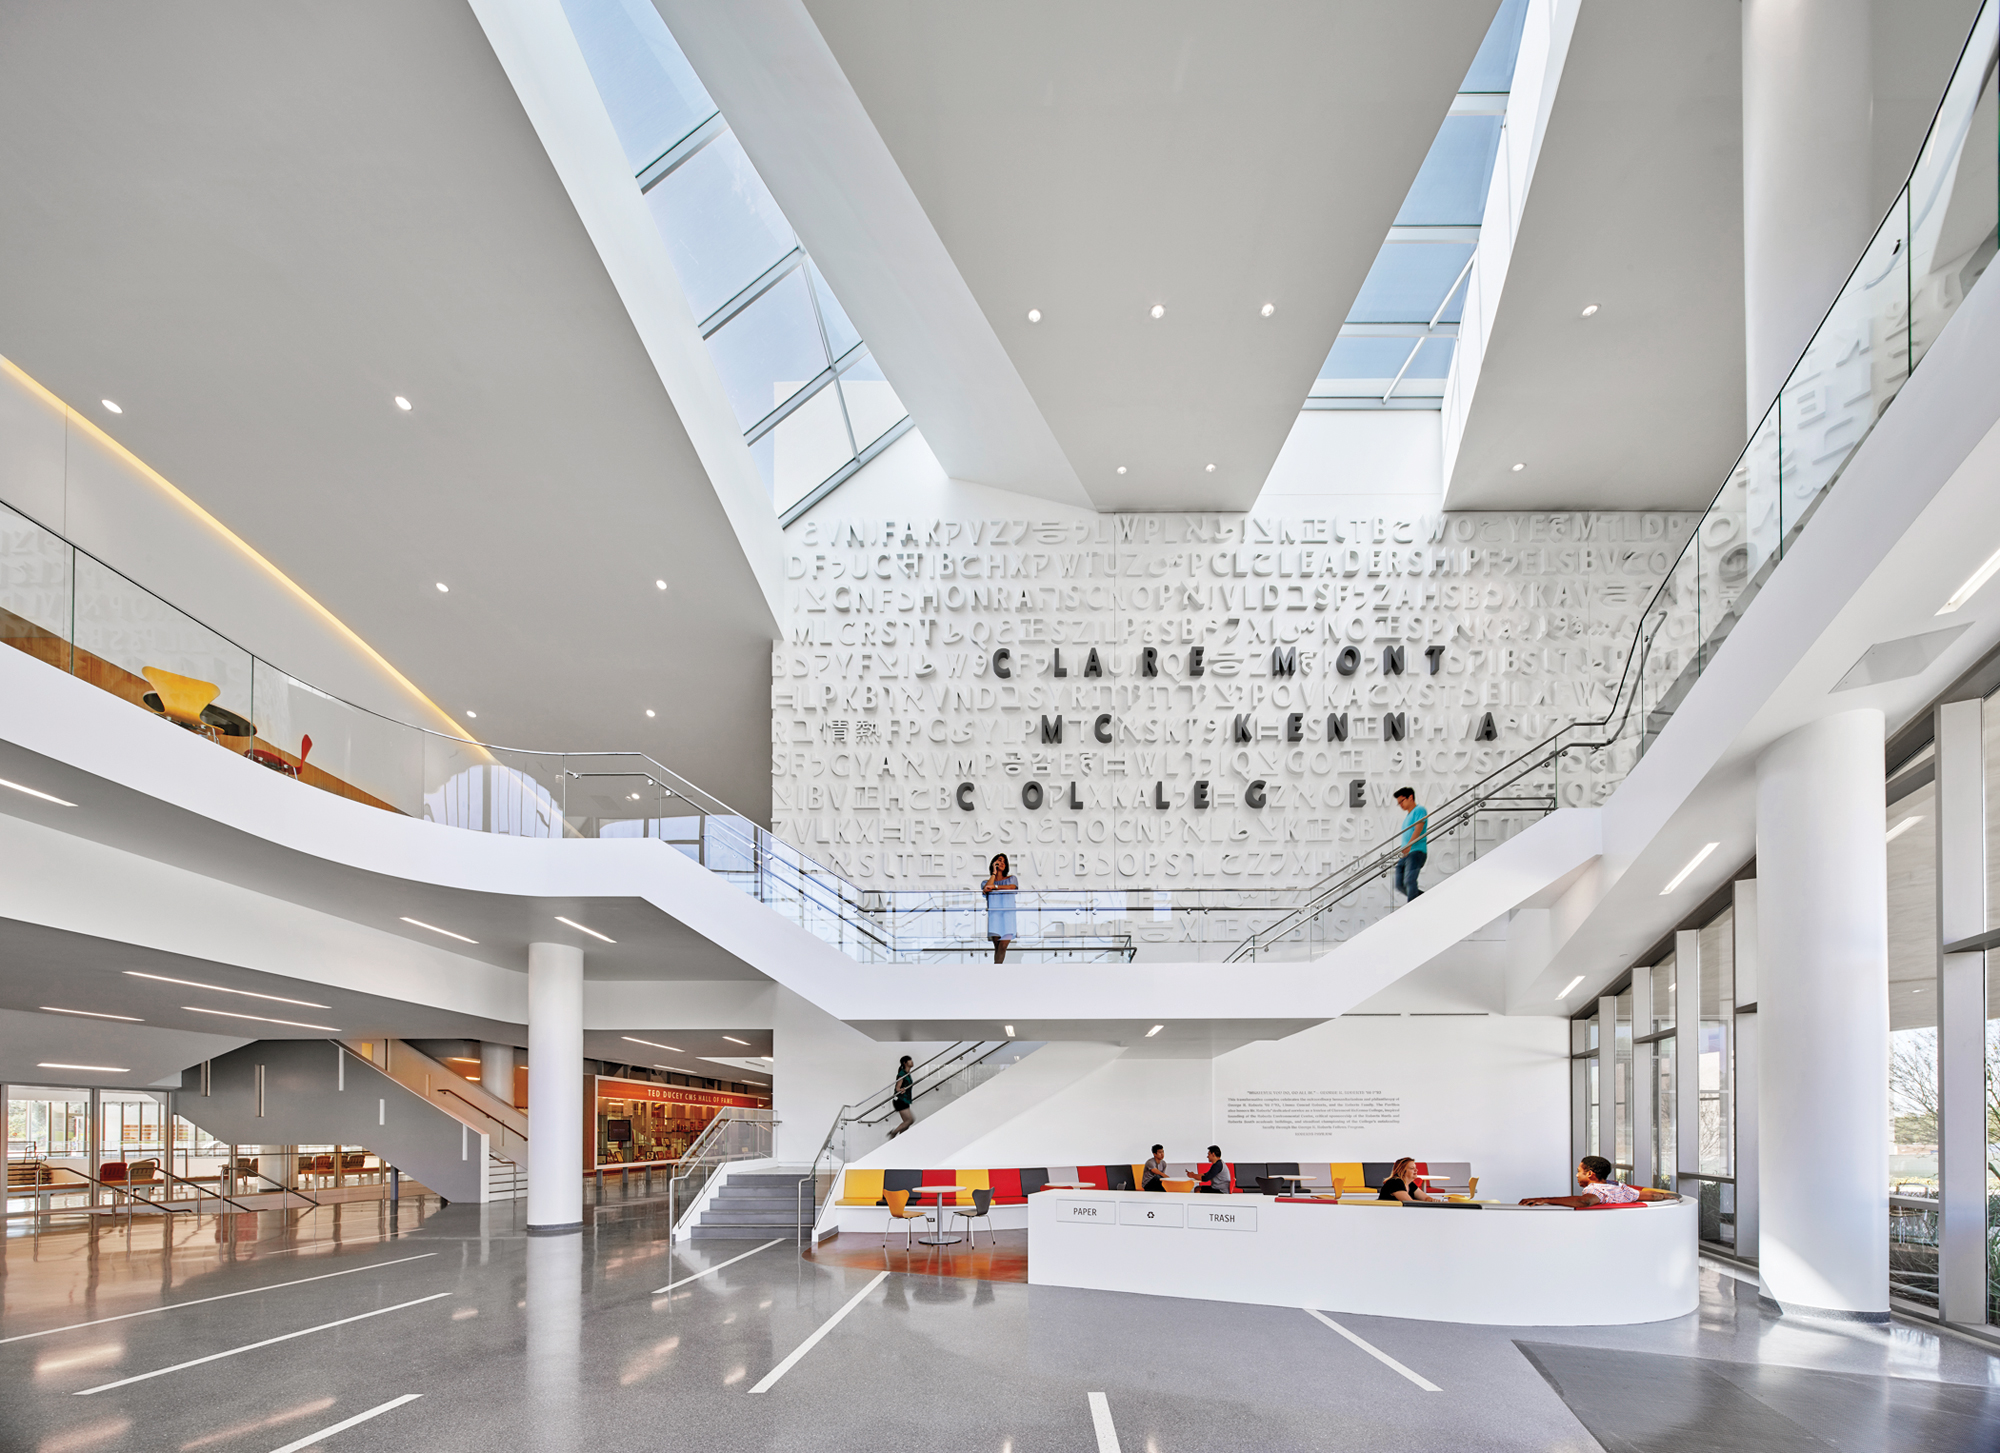 Roberts pavilion by john friedman alice kimm architects - Interior design school los angeles ...